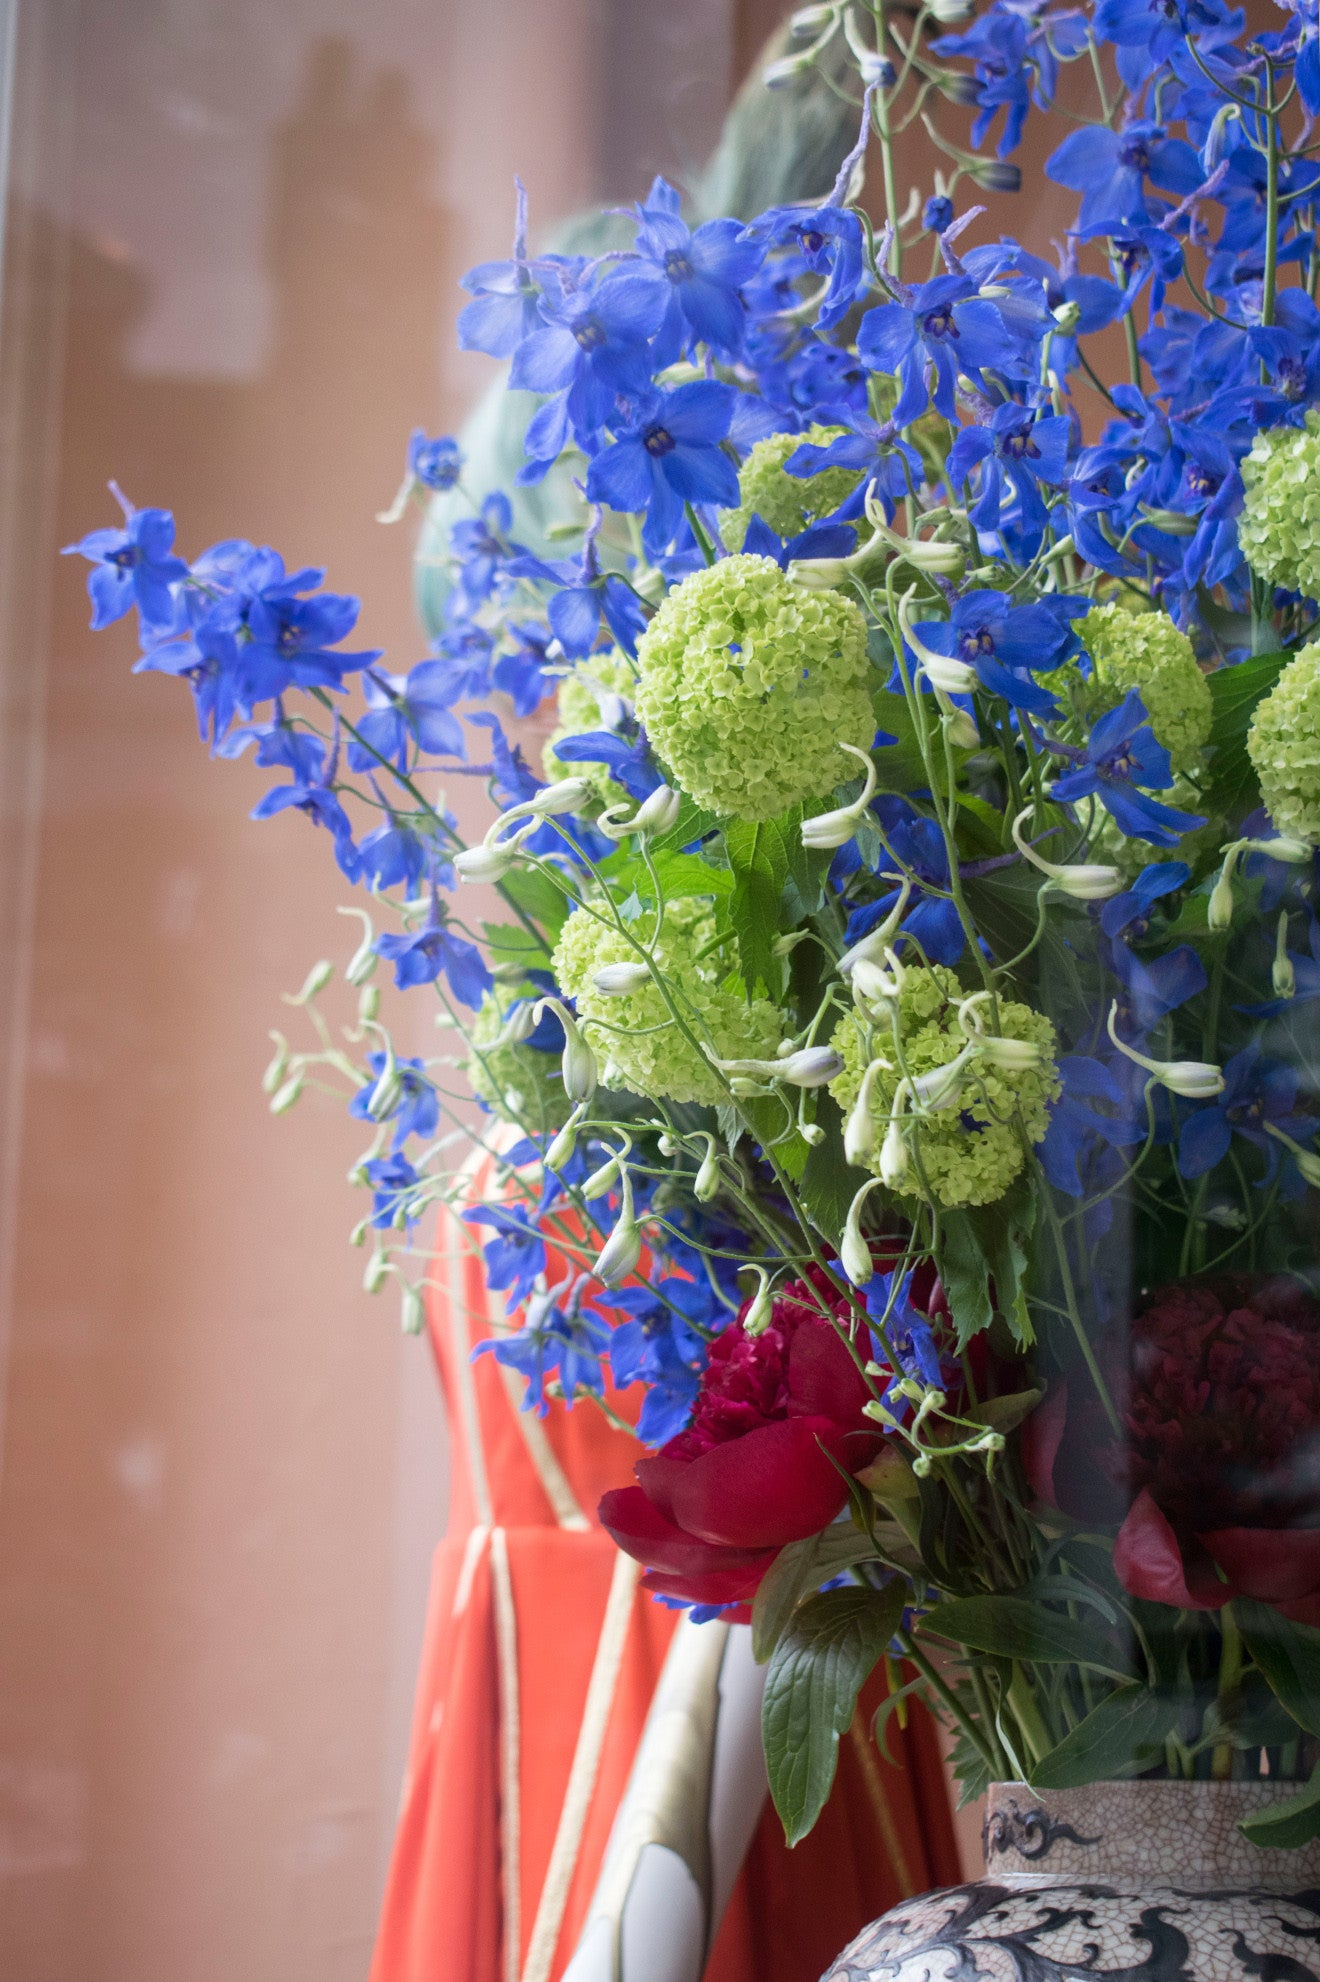 Blue flowers on display at Timothy Langston Pimlico Road